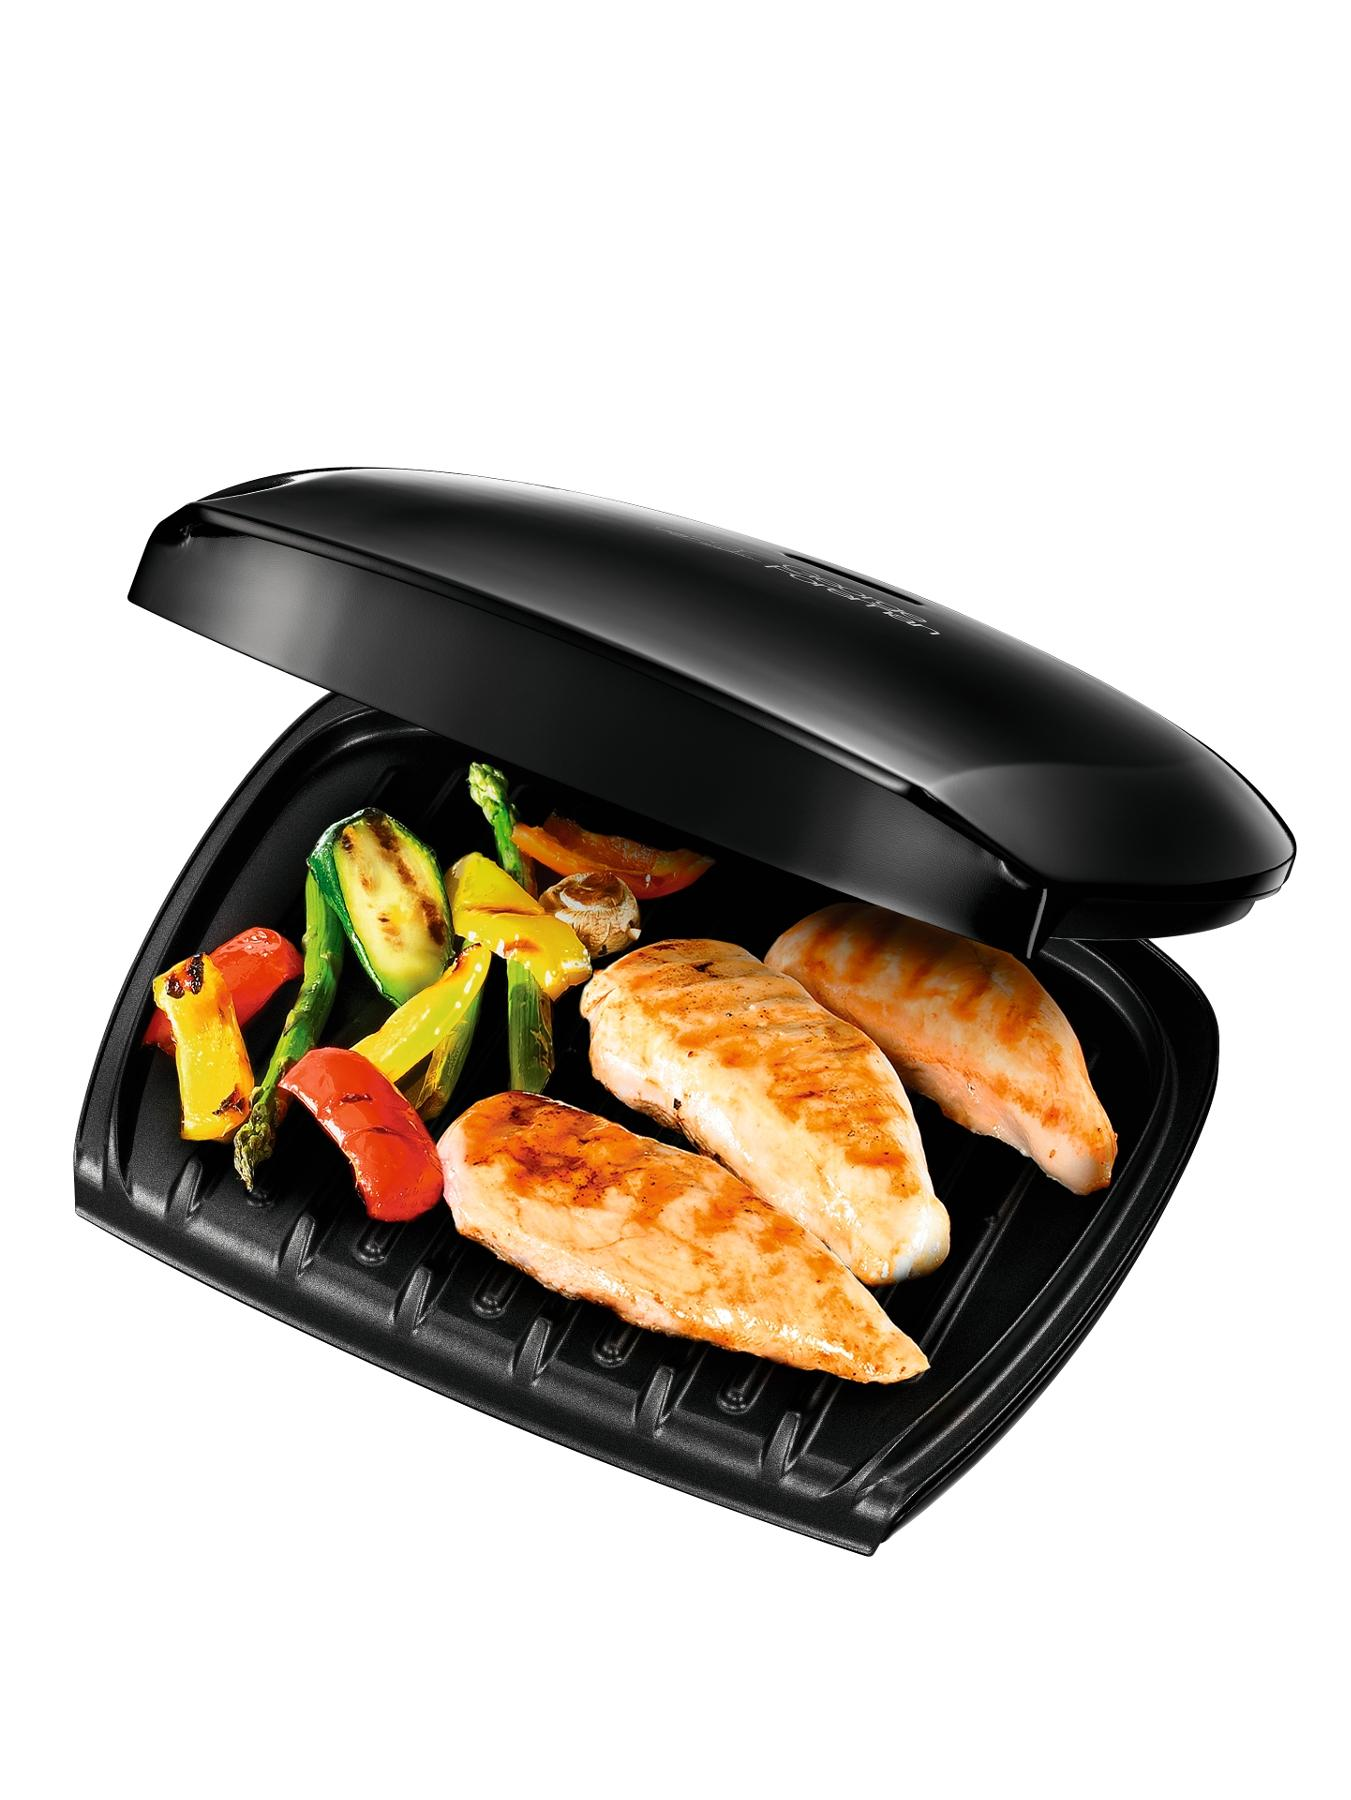 18870 5-Portion Family Grill - Black